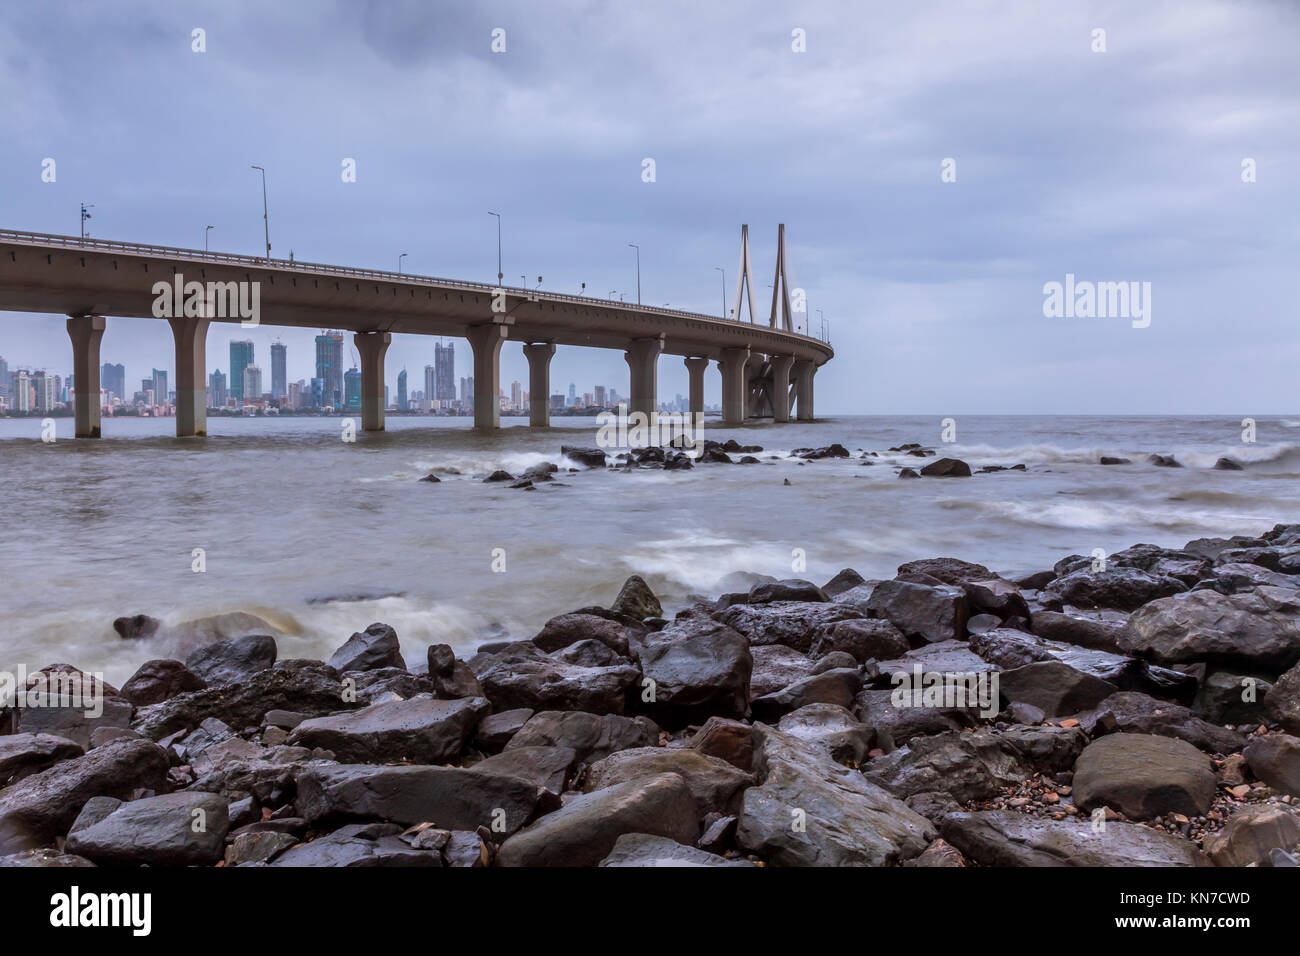 Sea view from Bandra Bandstand - Stock Image